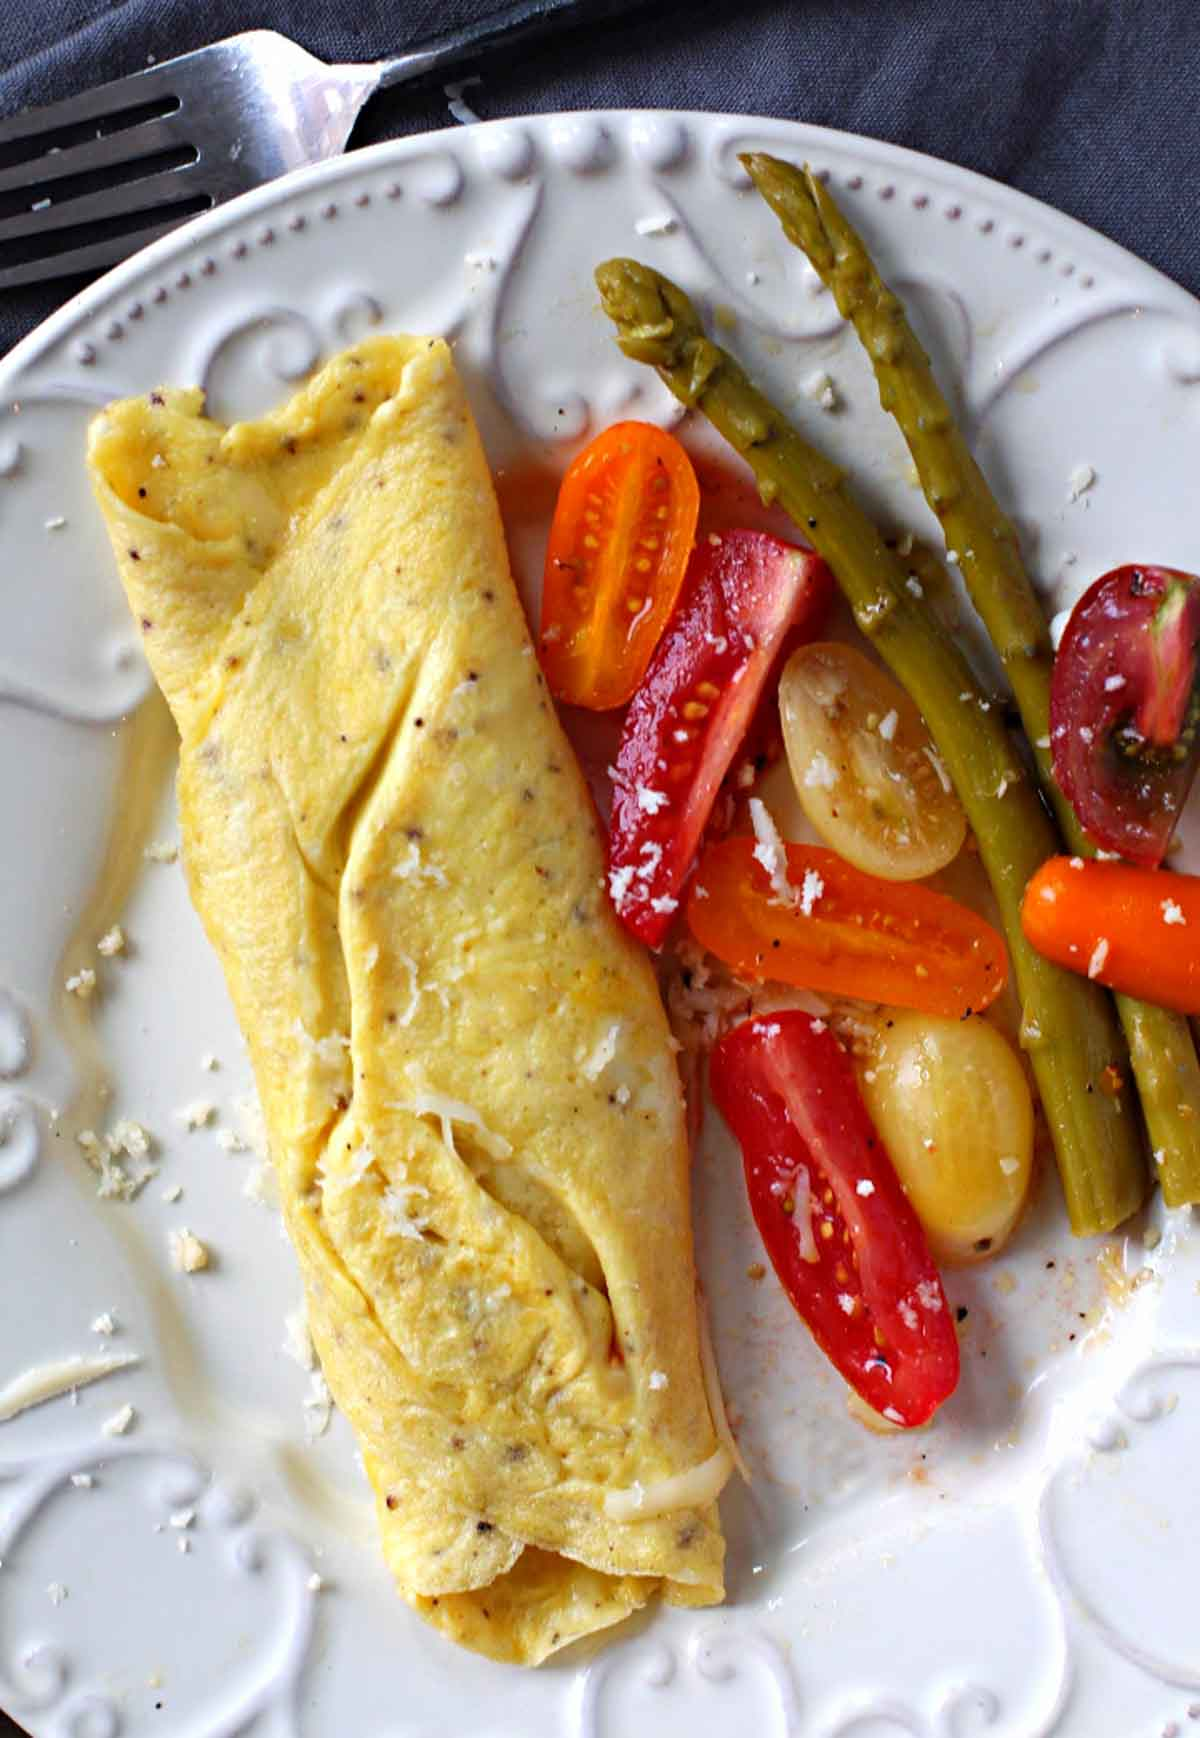 Omelette au fromage, cheese omelette served with sliced petite tomatoes and pickled asparagus